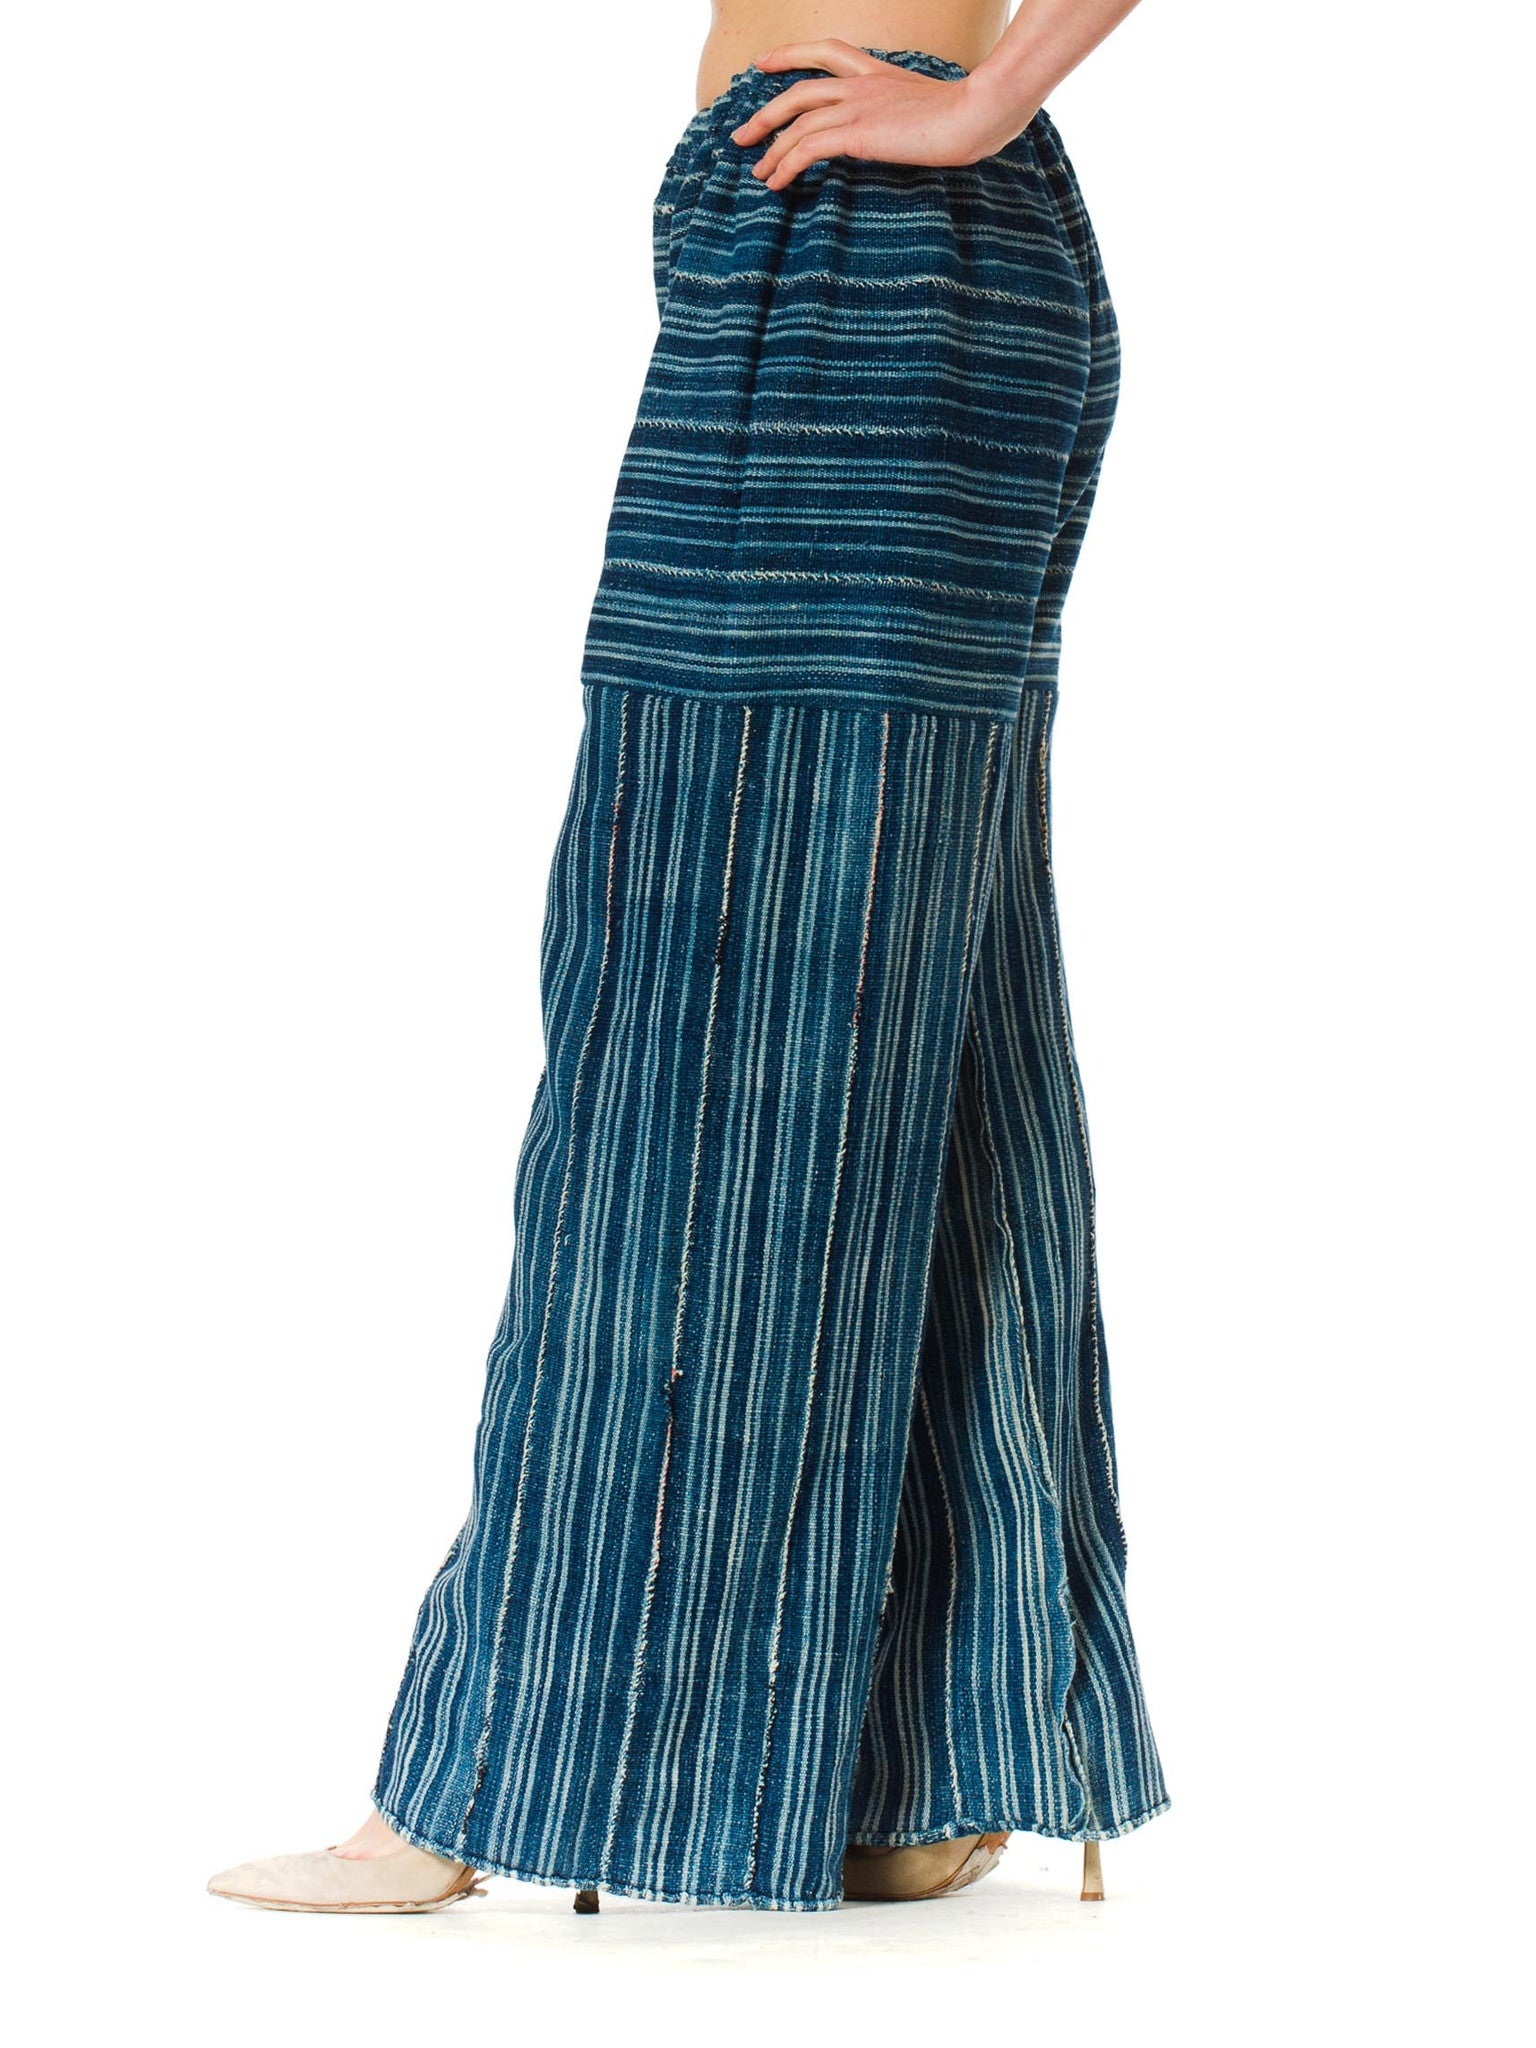 Morphew Collection Indigo Blue Cotton Summer Palazzo Pants Made Of African Hand Woven Fabric